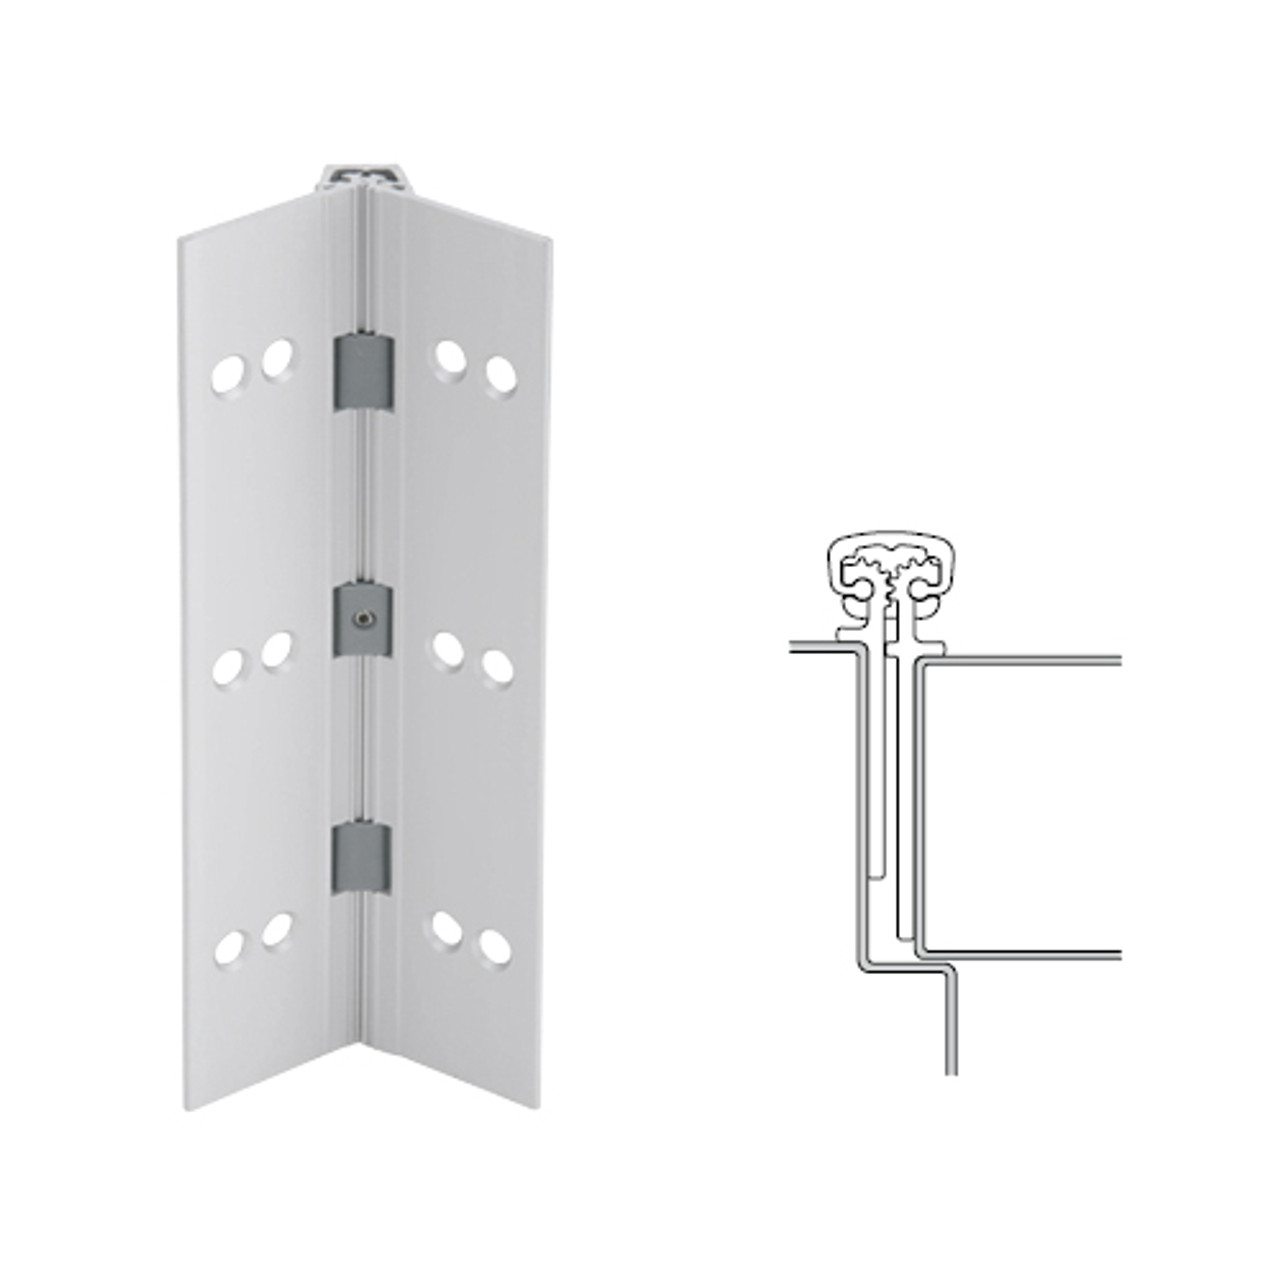 026XY-US28-85 IVES Full Mortise Continuous Geared Hinges in Satin Aluminum